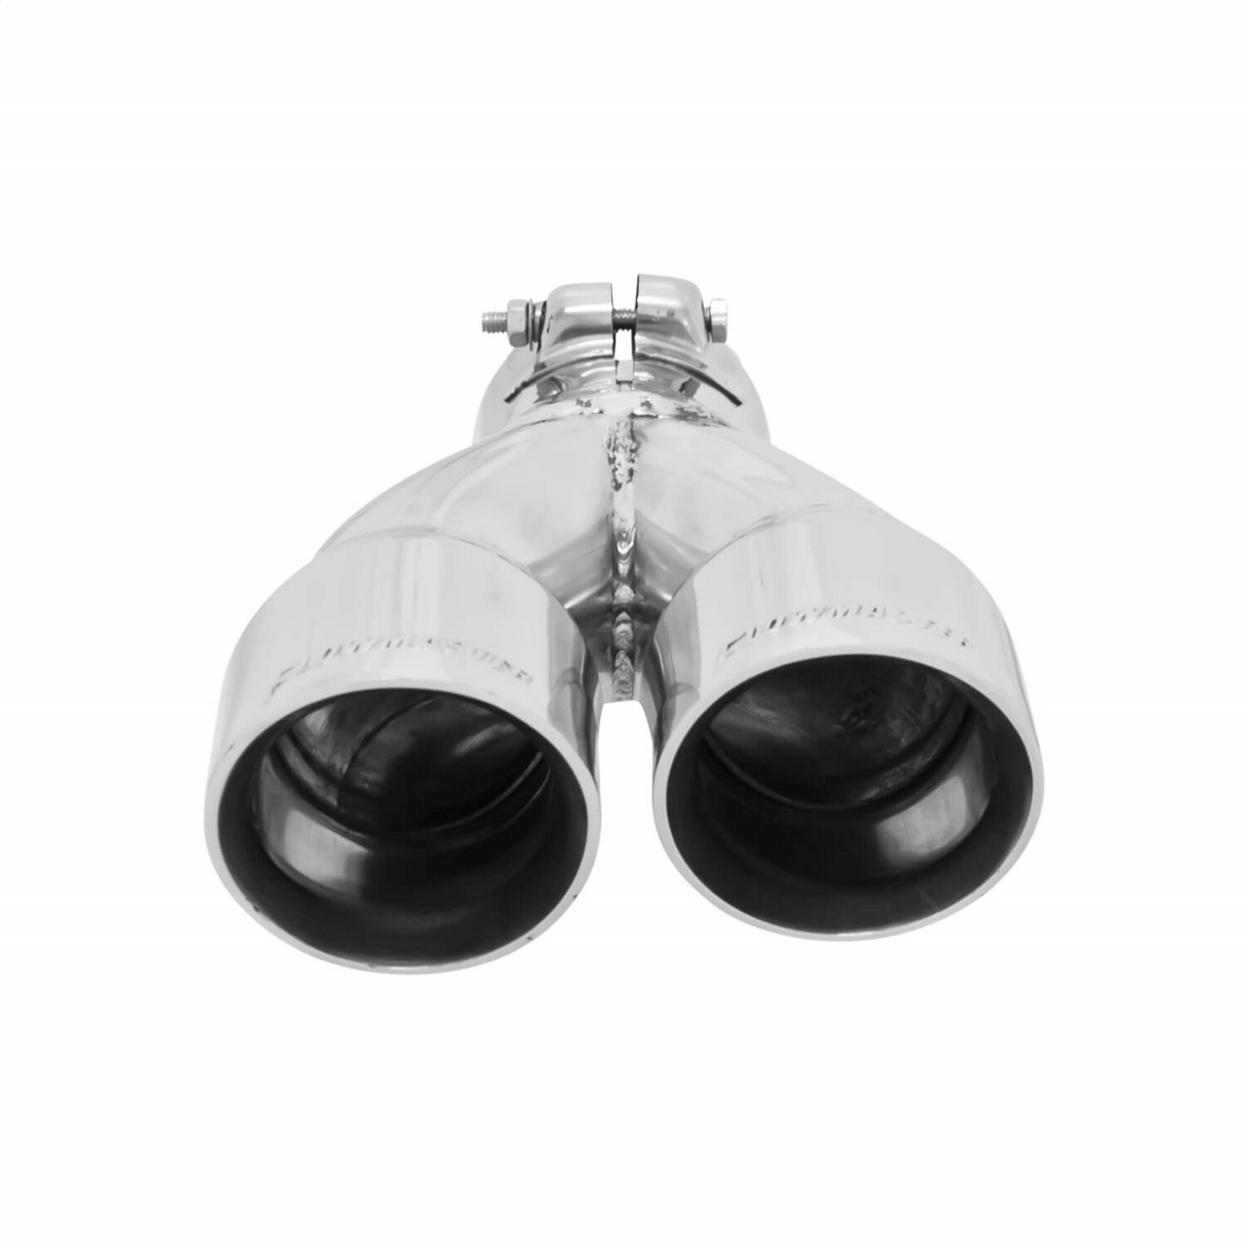 Exhaust Tip - 3.00 in Dual Angle Cut Polished SS Fits 2.50 in. - Right -Clamp on